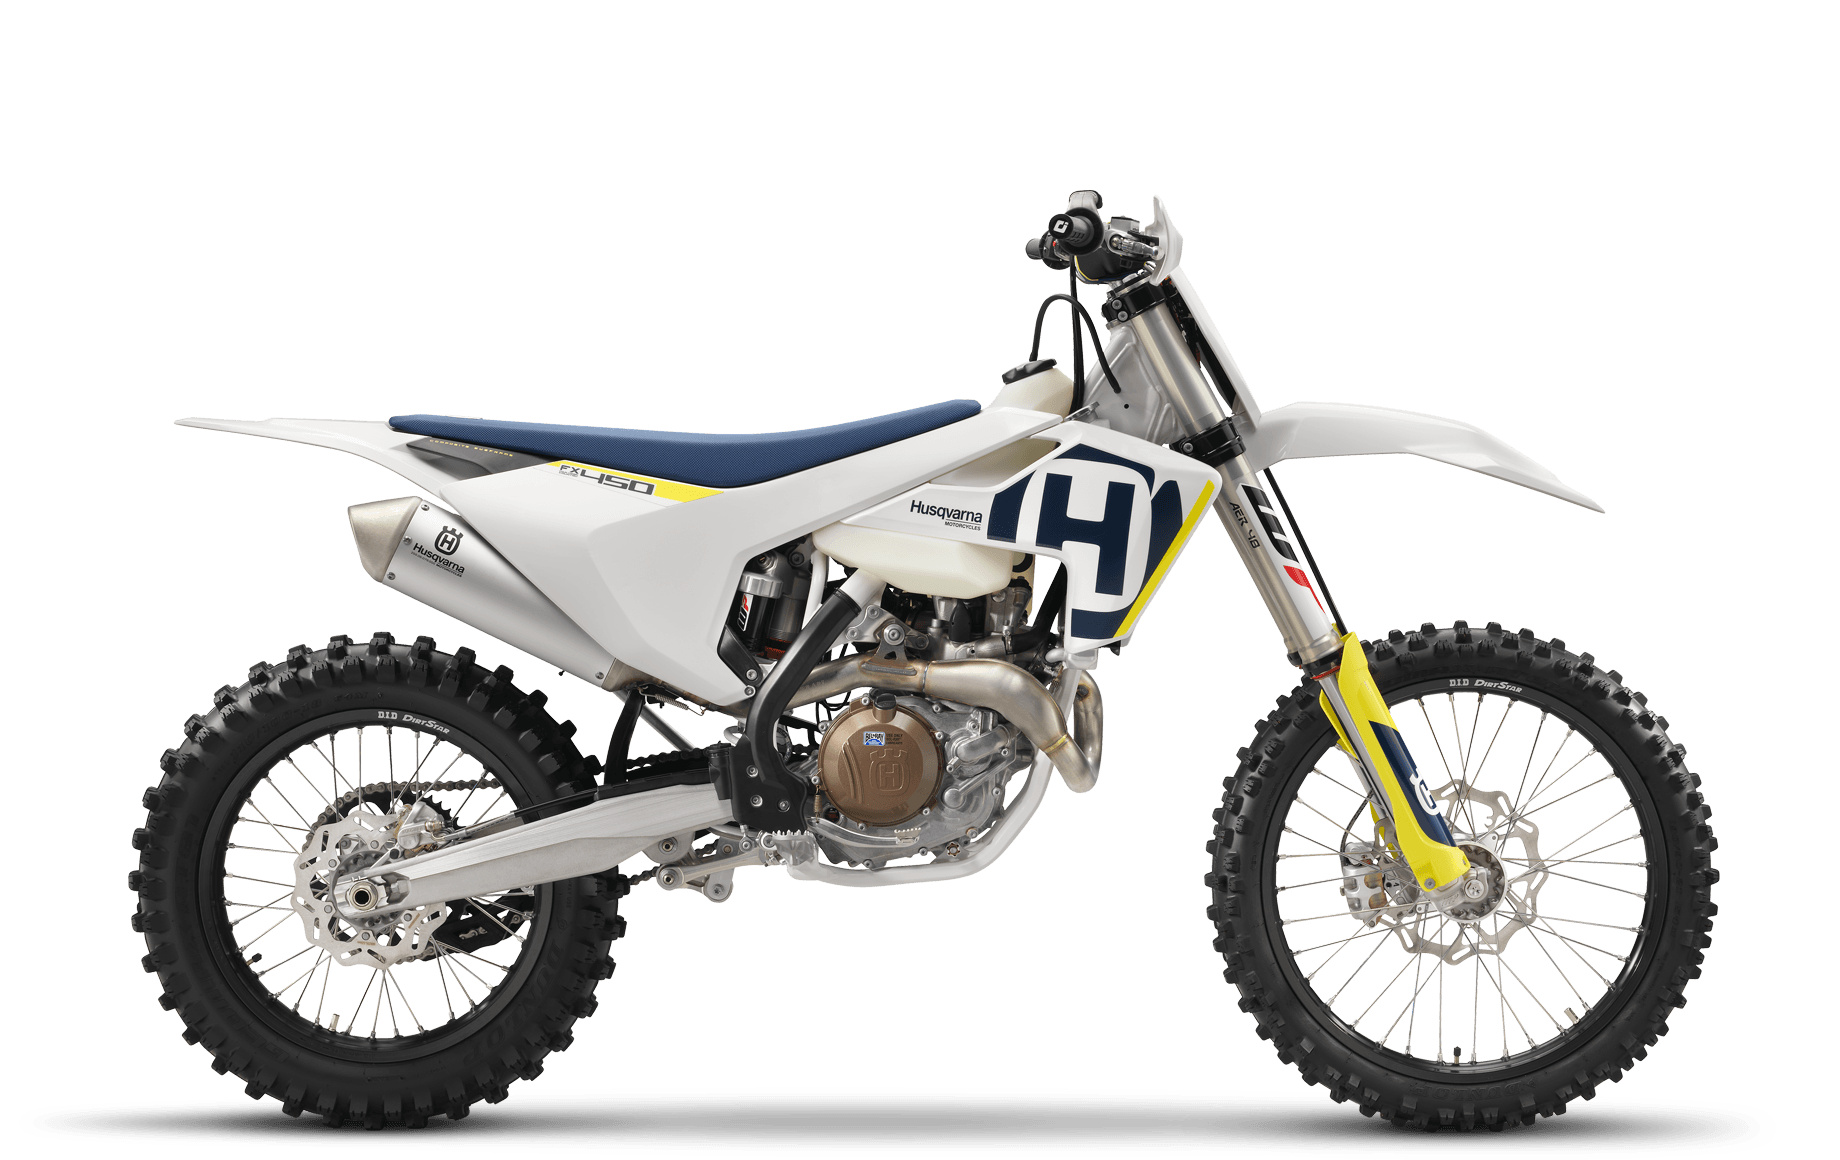 2018 Husqvarna FX 450 in Orange, California